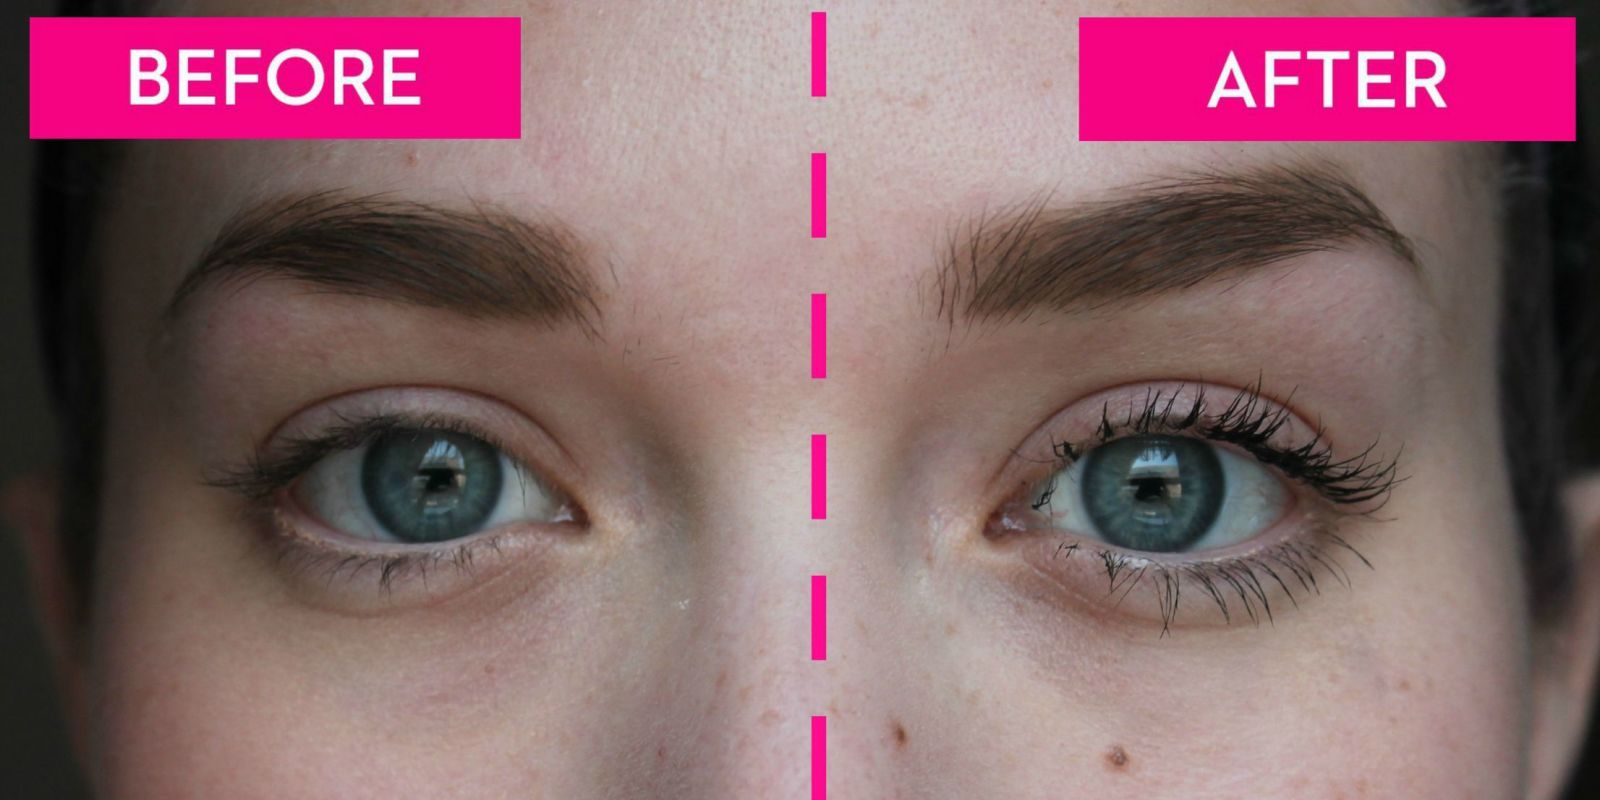 eyelash curler before and after. eyelash curler before and after good housekeeping